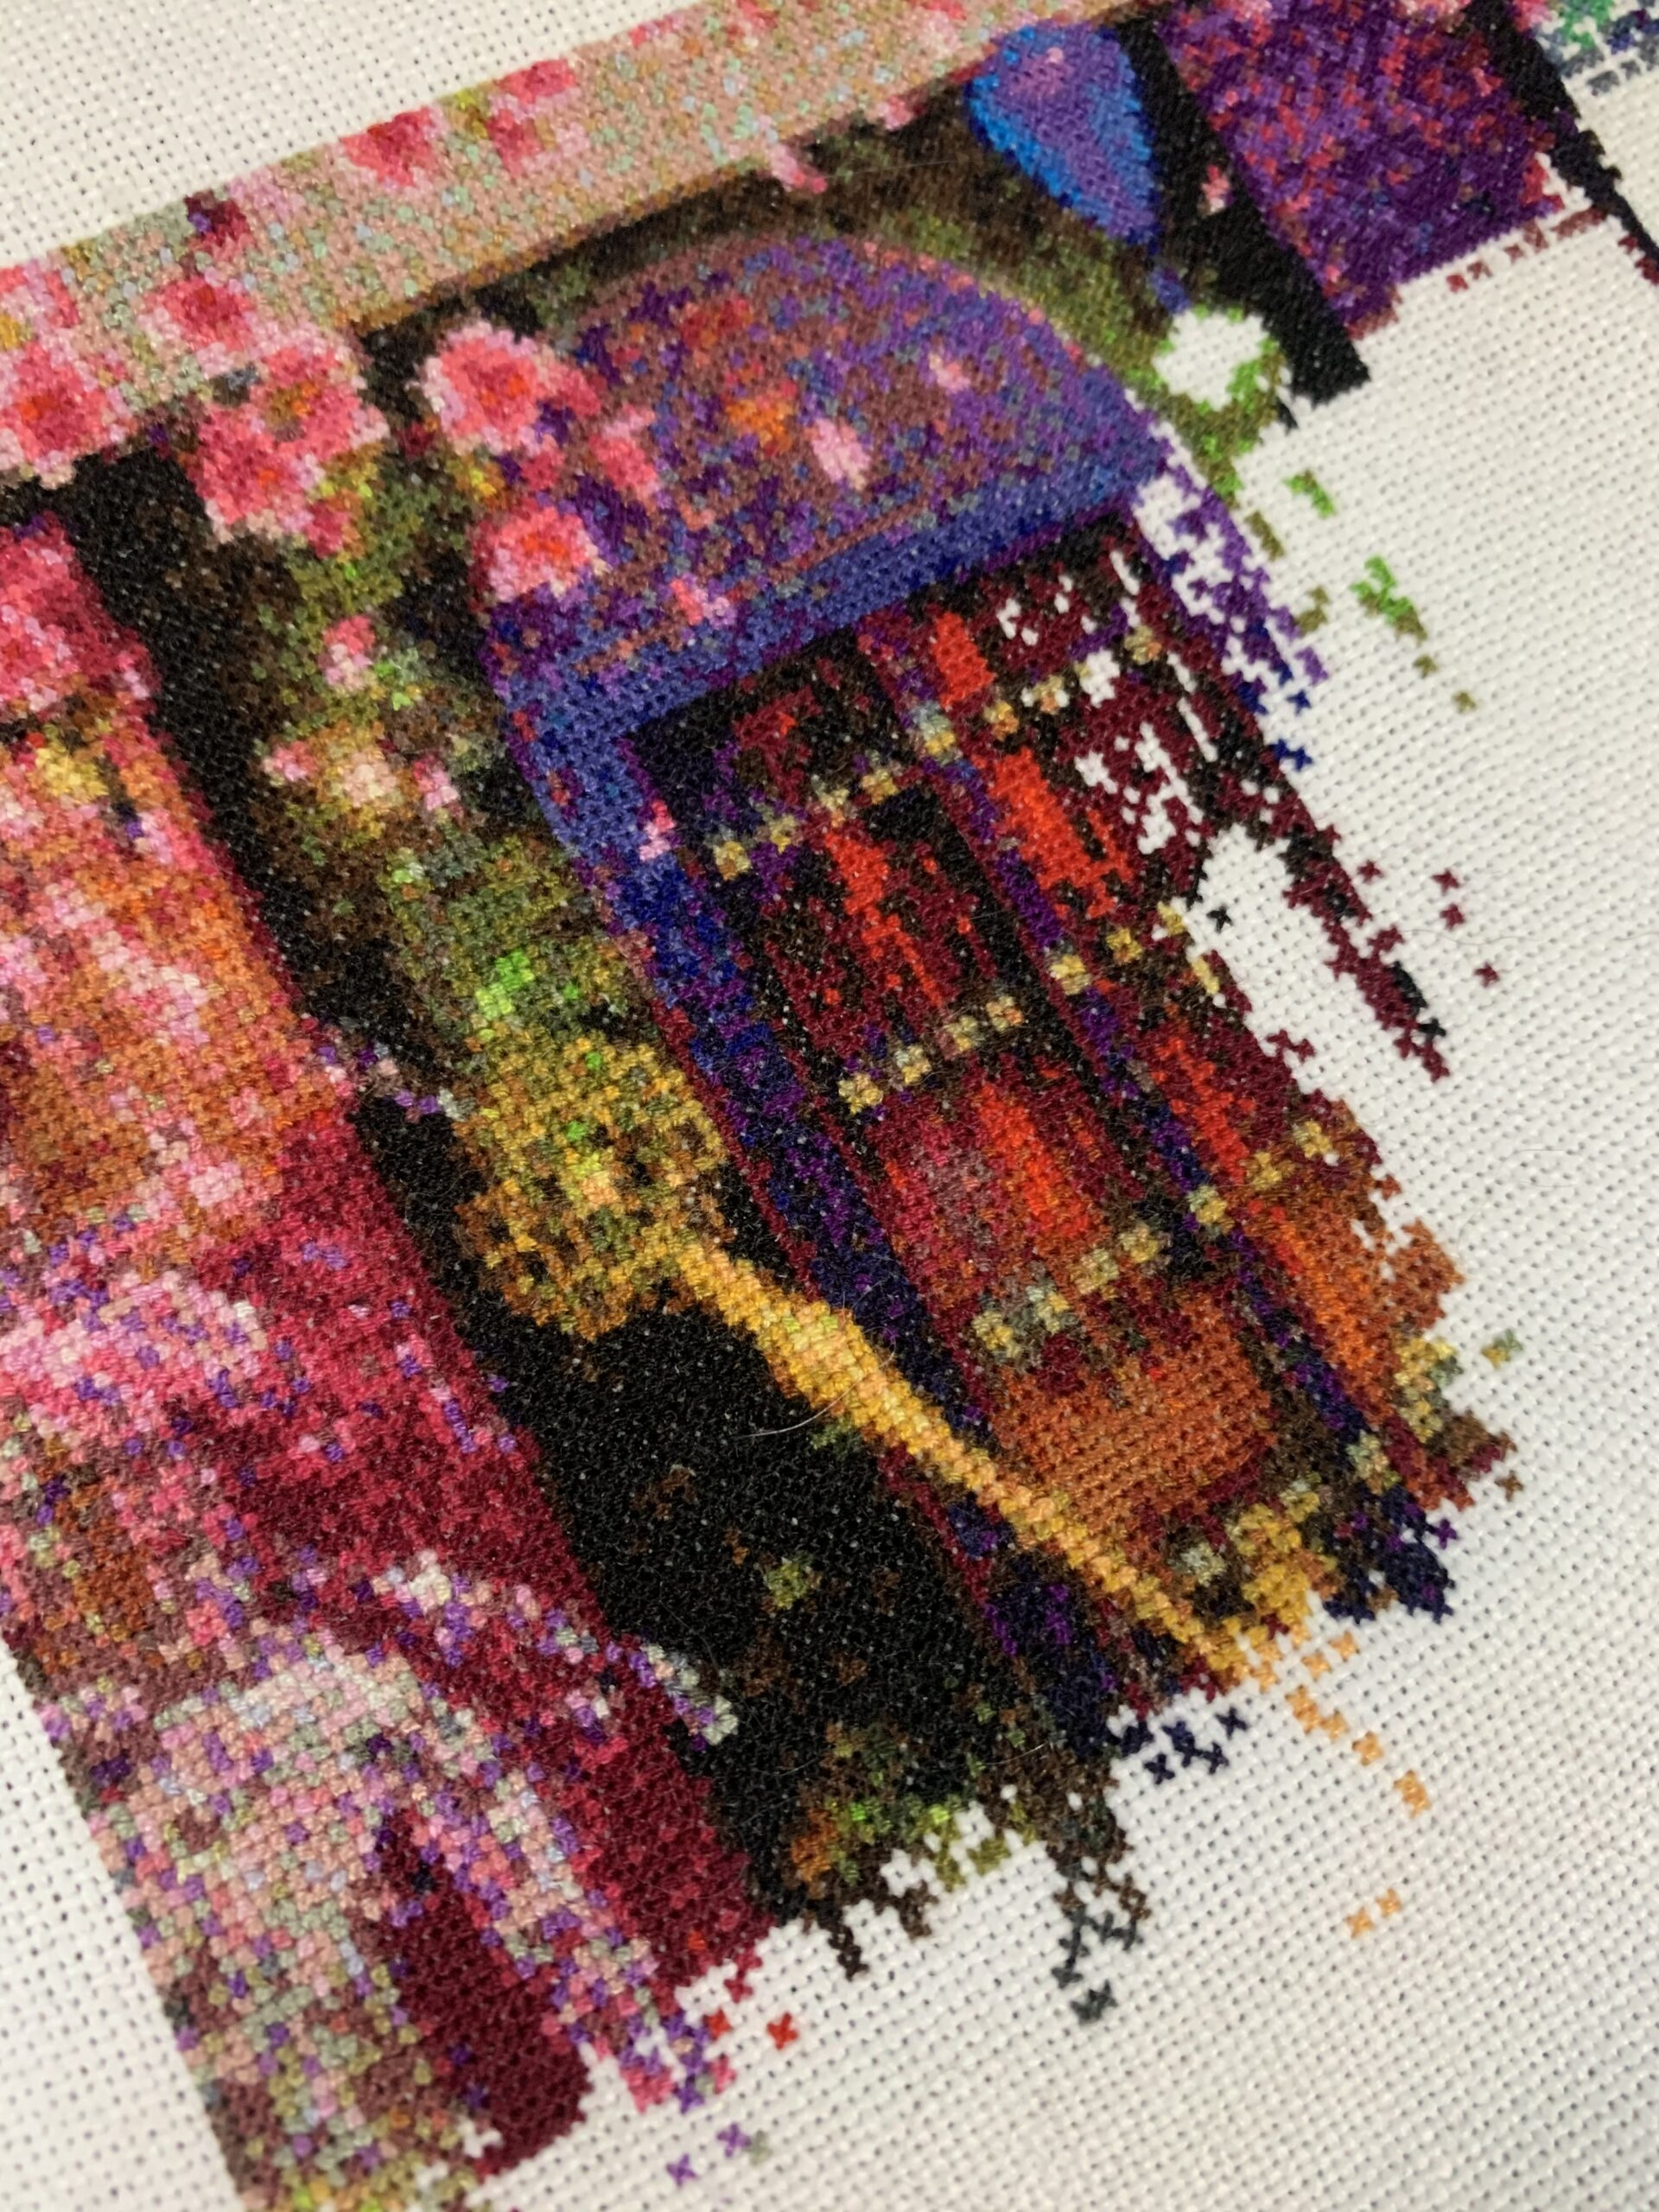 A Stitch In Time September 20